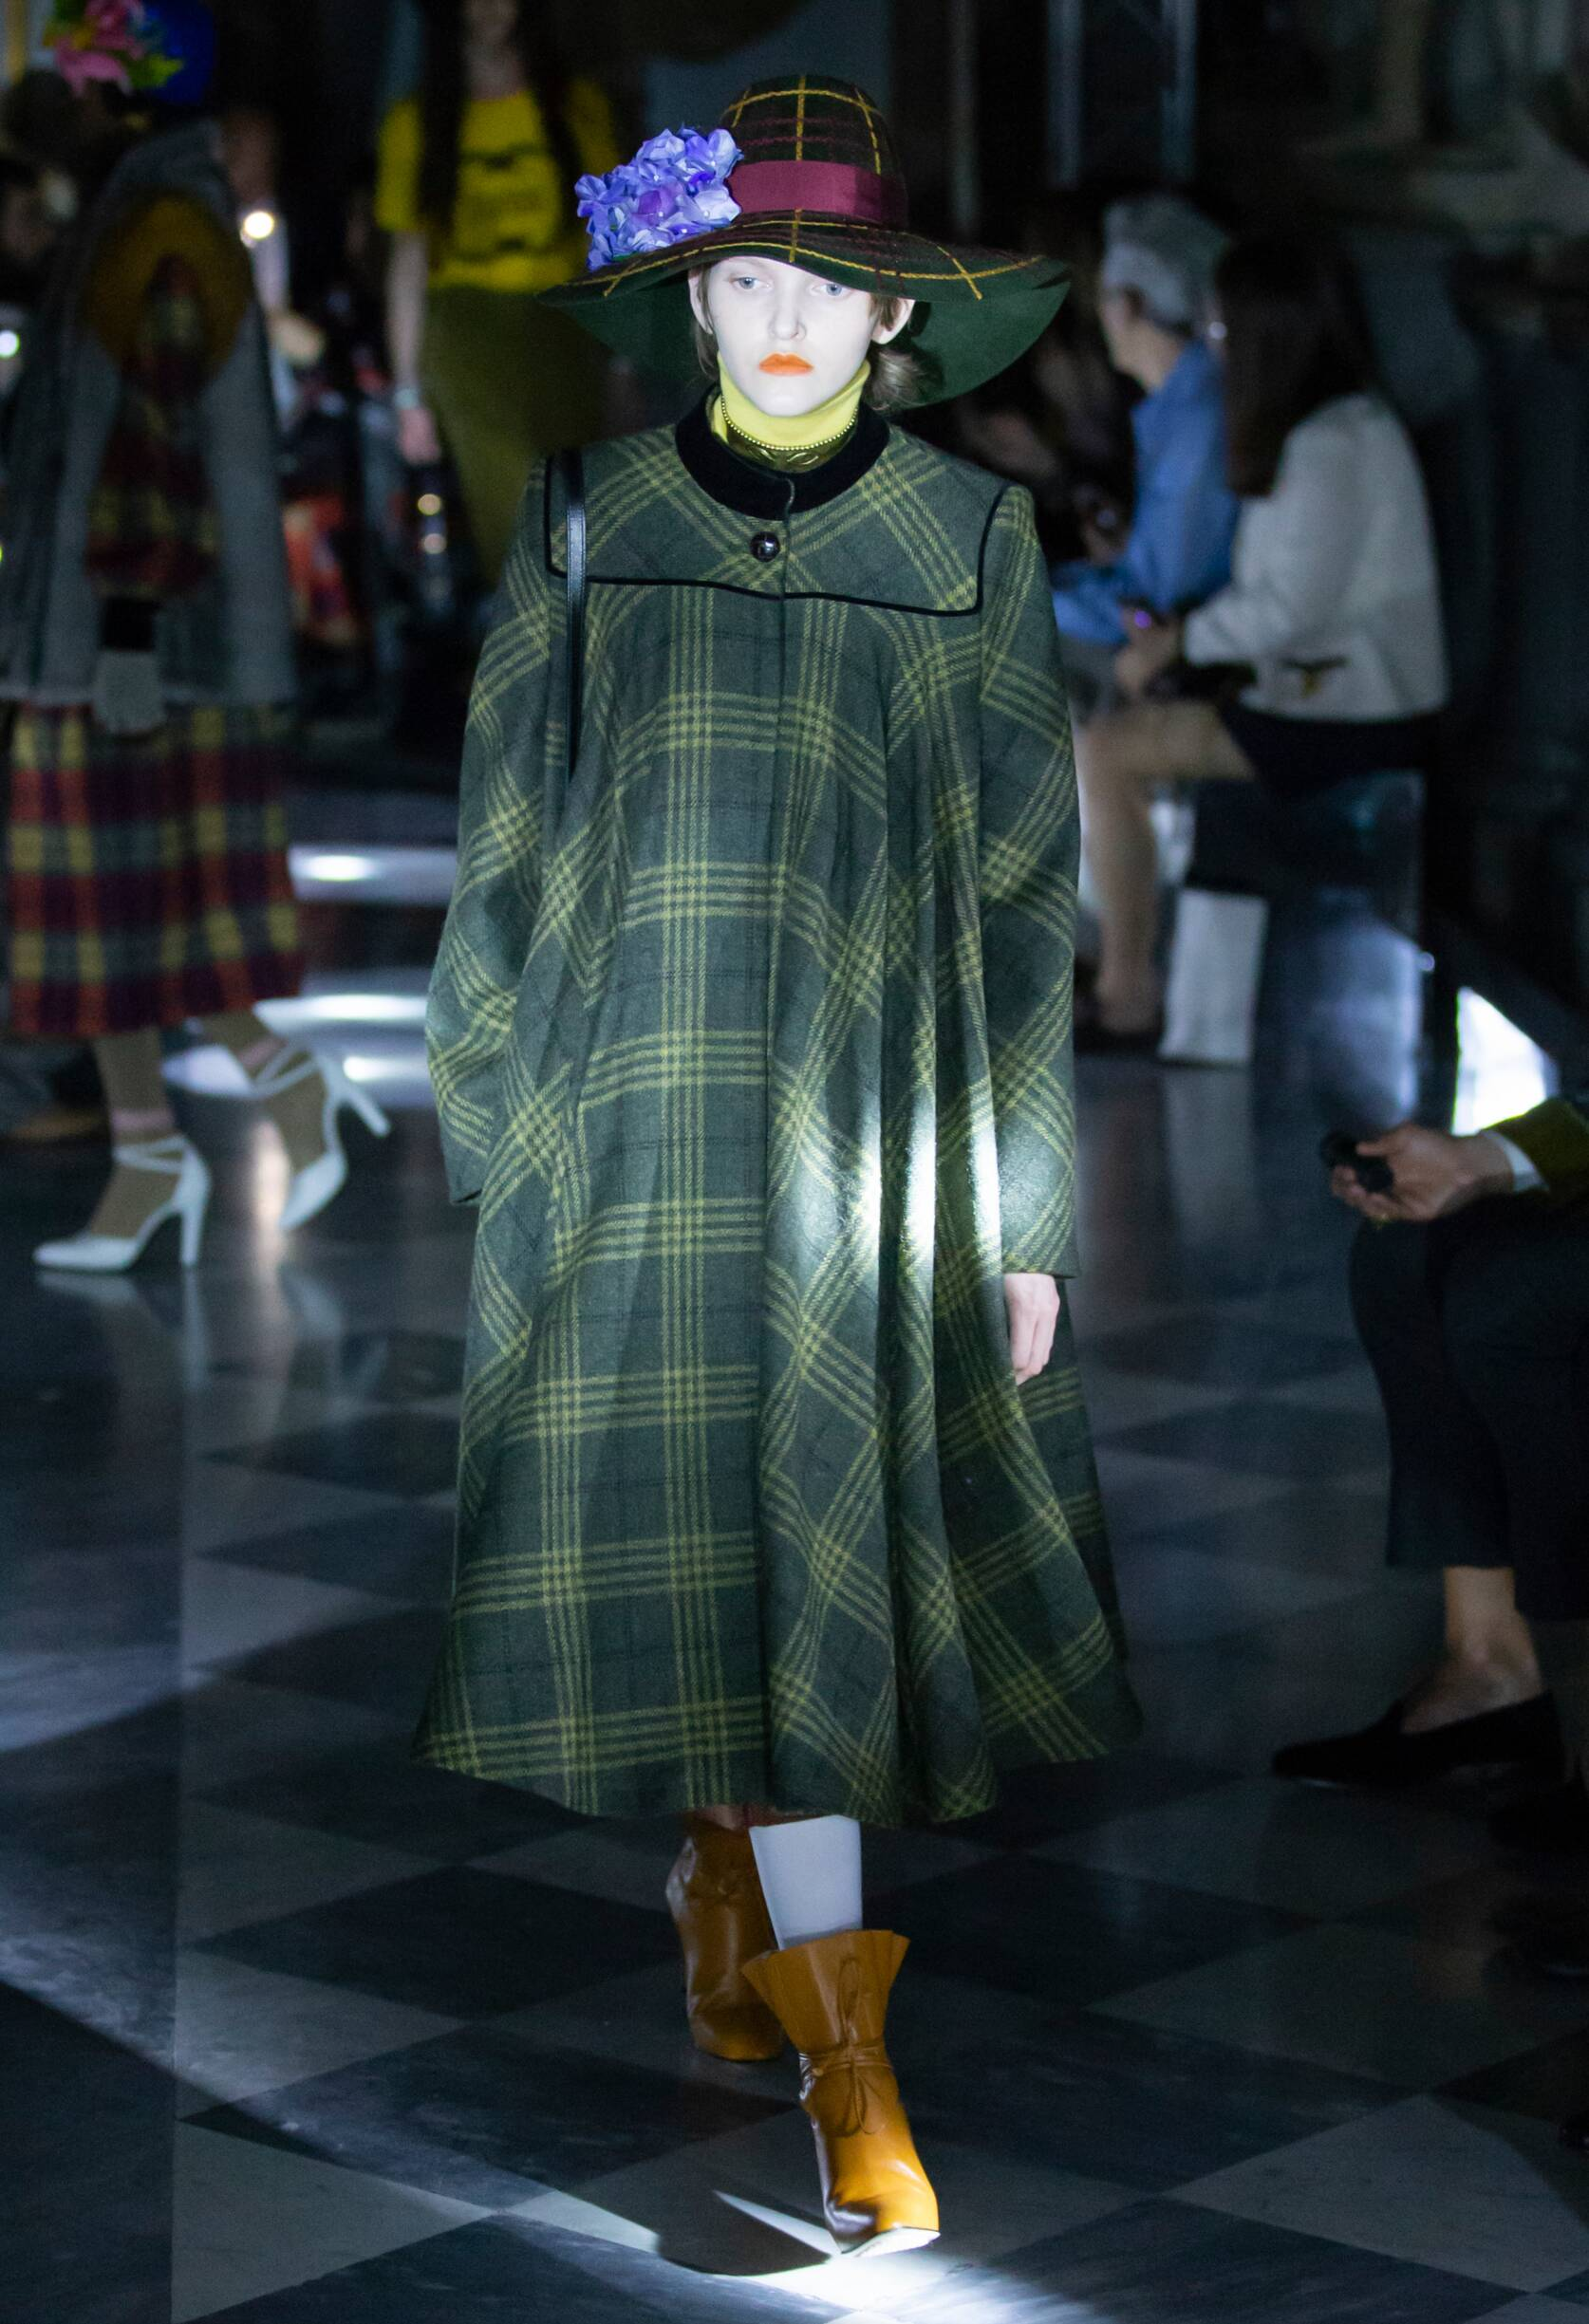 Gucci Cruise 2020 Collection Look 9 Rome